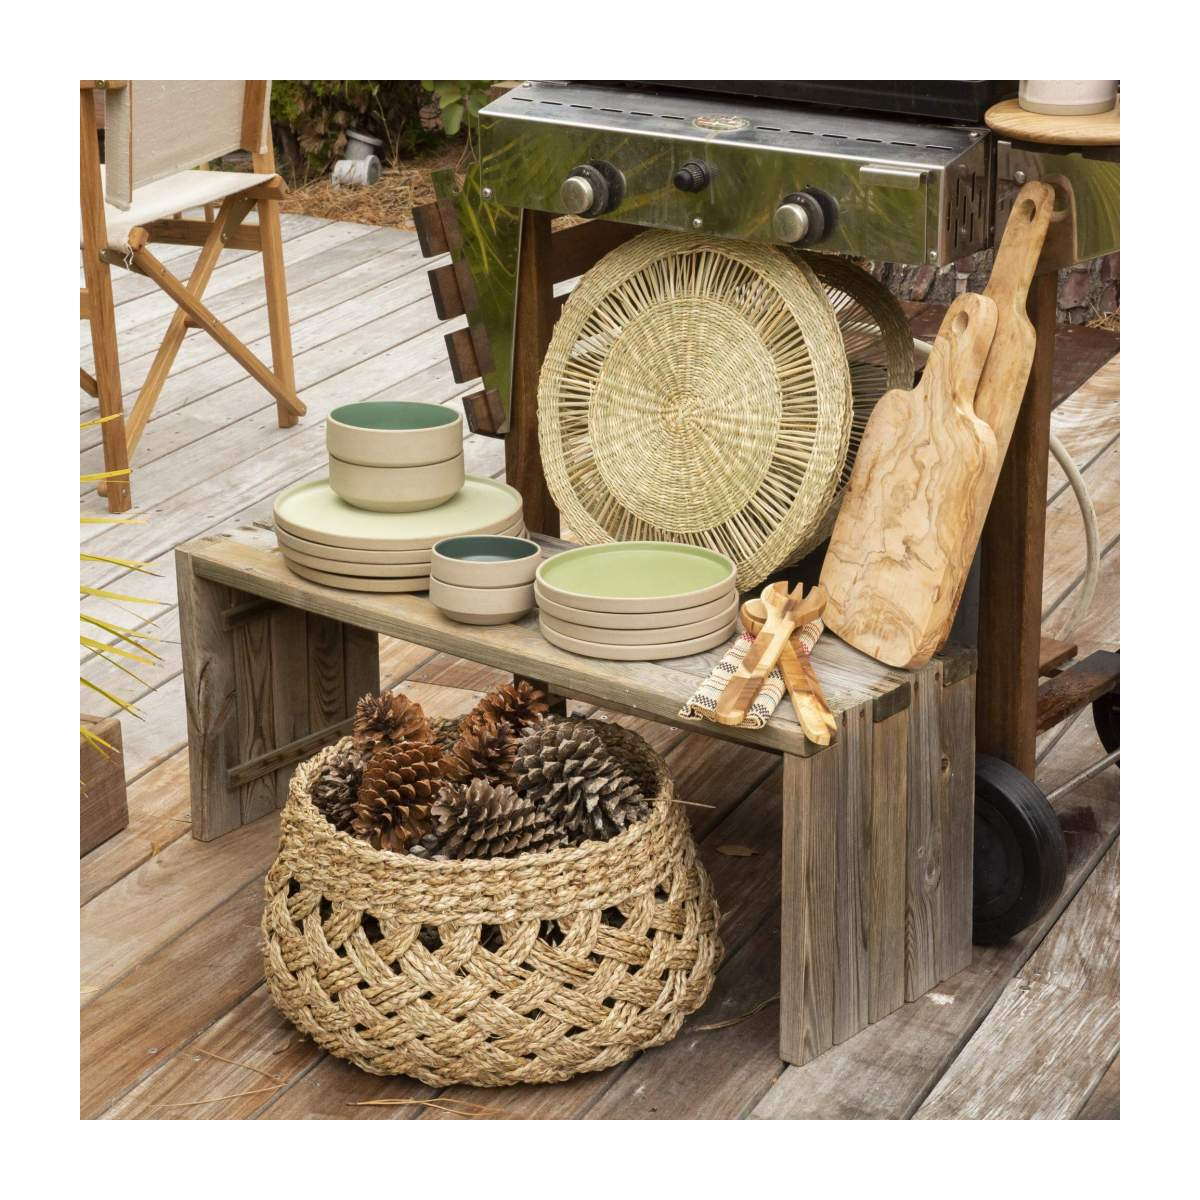 Set de table rond en jonc de mer - Naturel - 40 cm n°5